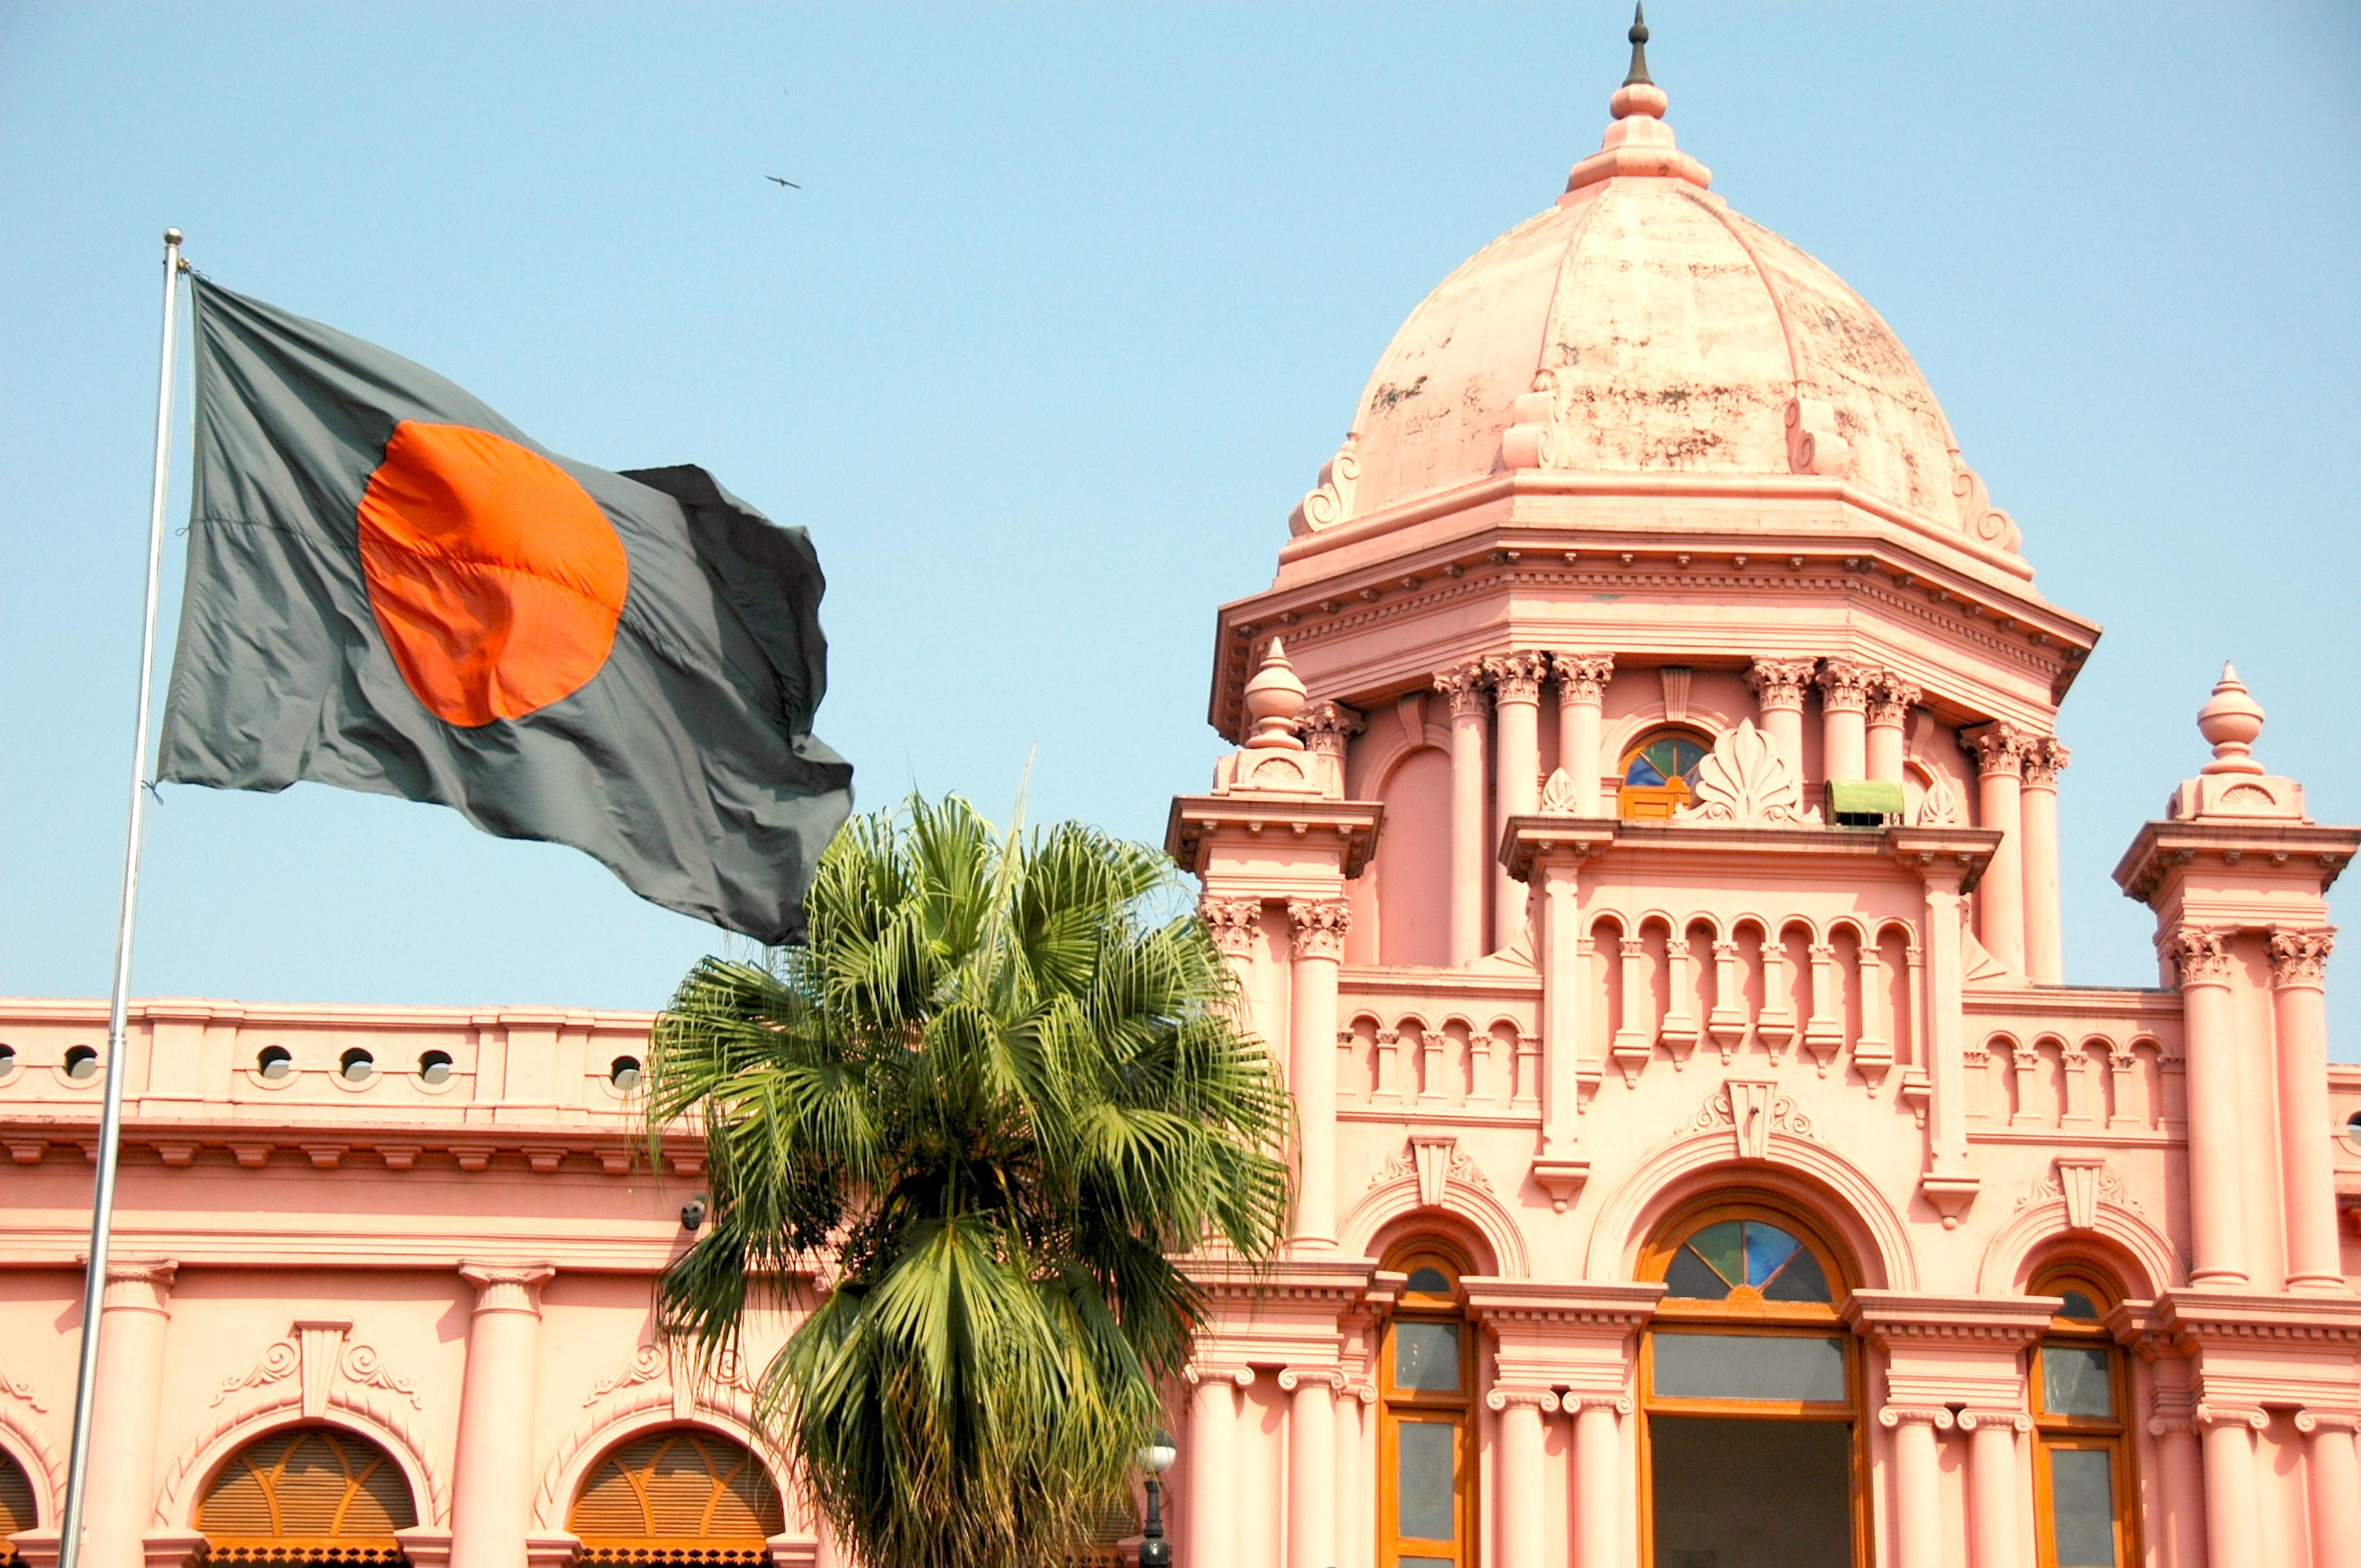 Colonial building with the Bangladeshi flag waving in front of it